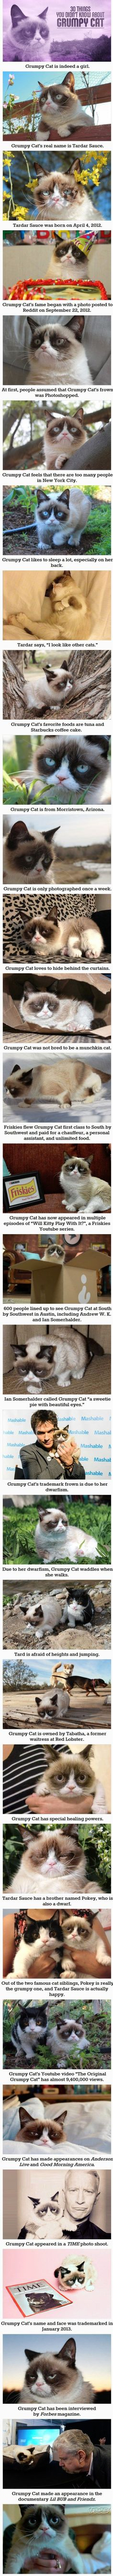 30 Things You Didnt Know About Grumpy Cat ----- <3 this kitty...and always knew being grumpy was the key to success :)